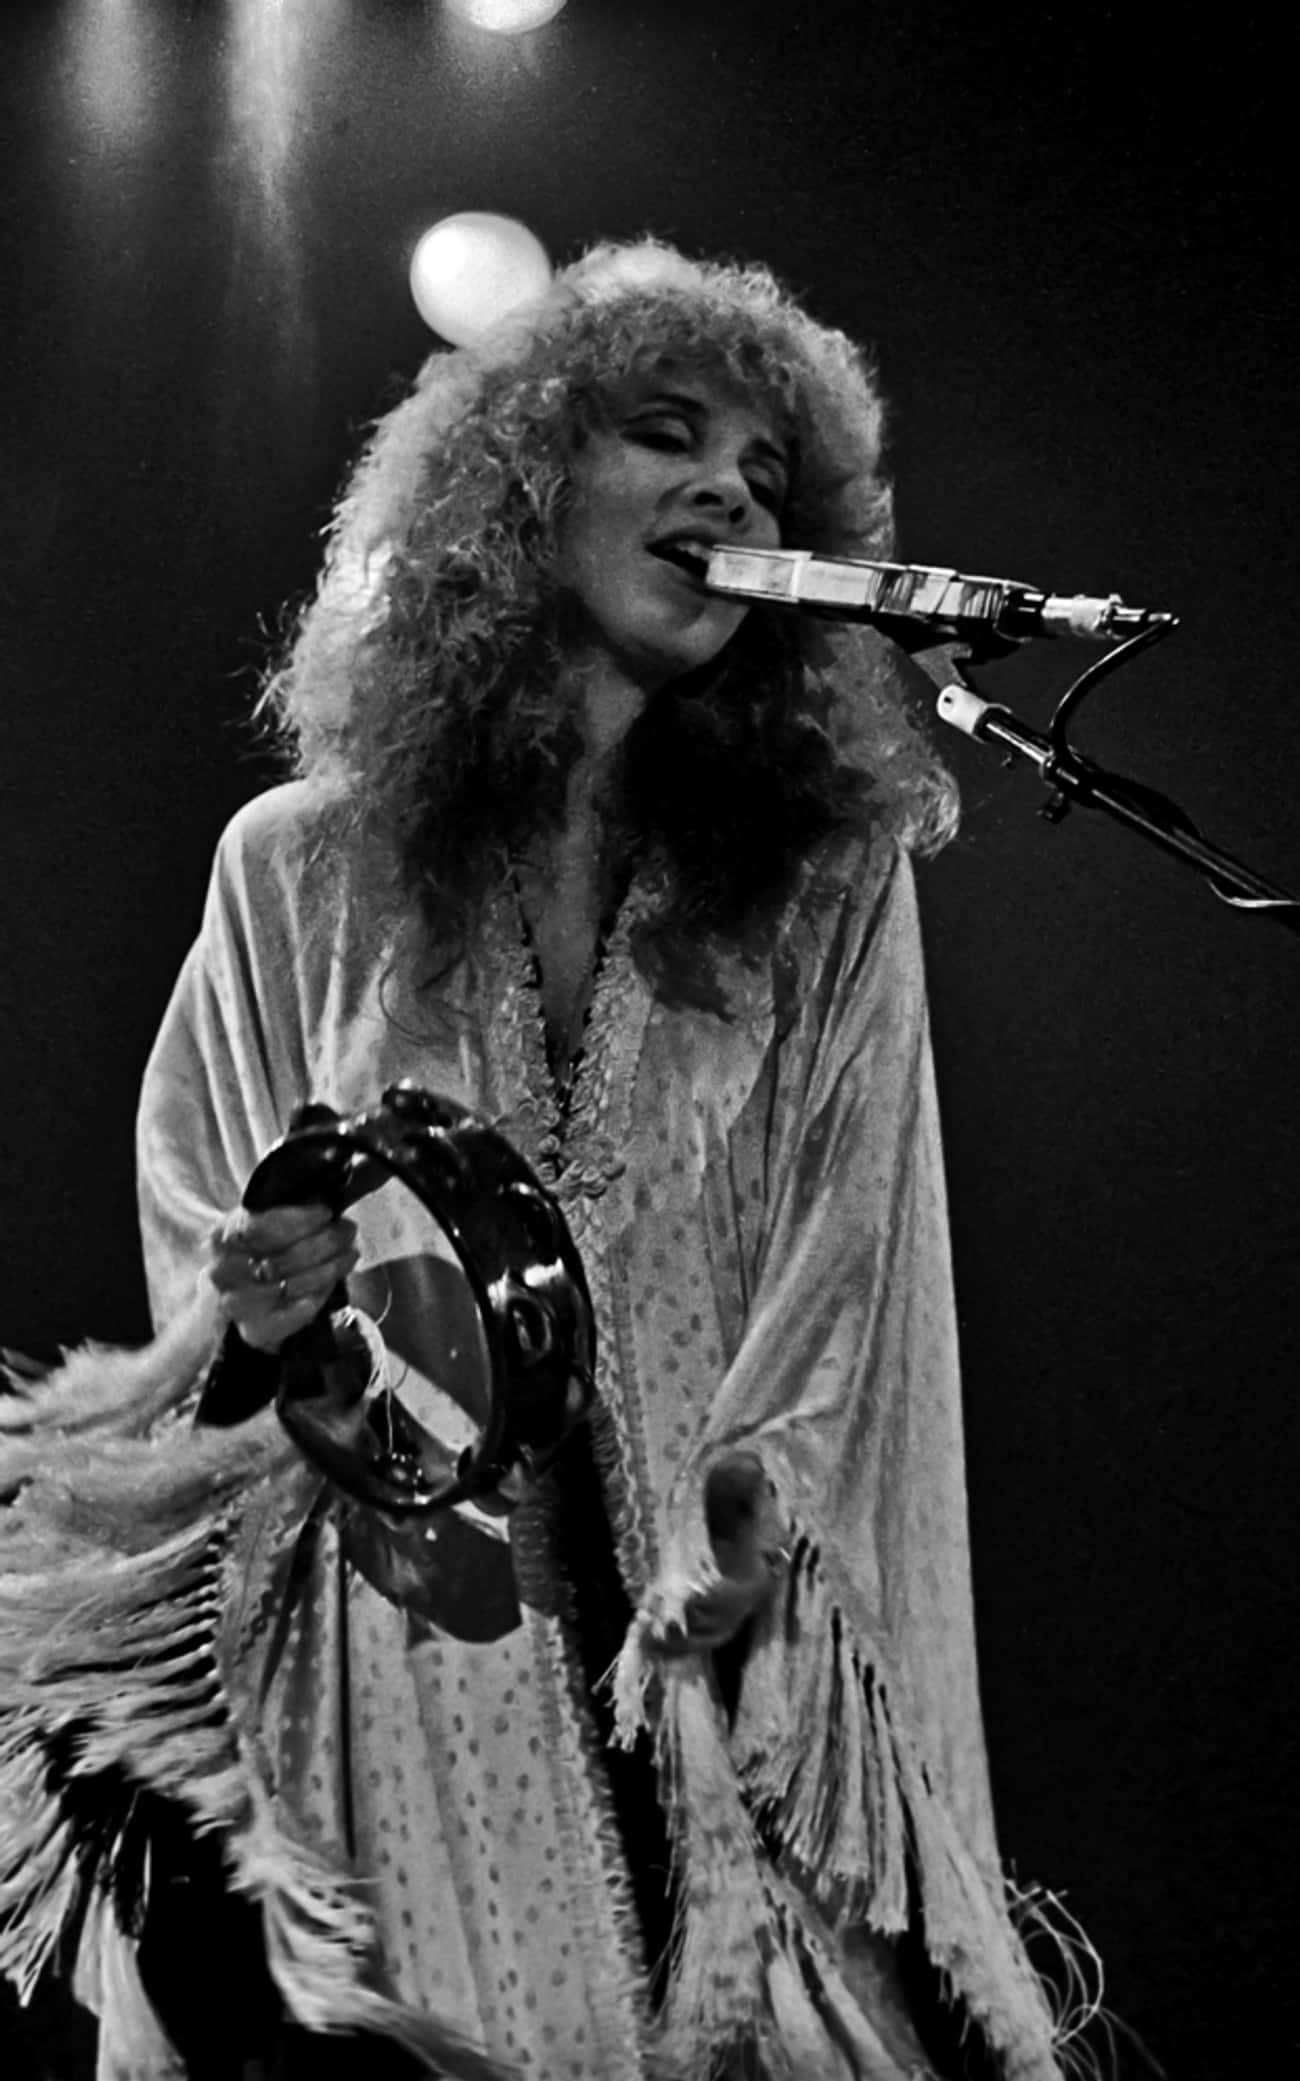 She Traveled With Her Own Cove is listed (or ranked) 4 on the list 14 Behind-The-Scenes Stories From Stevie Nicks's Unique Life